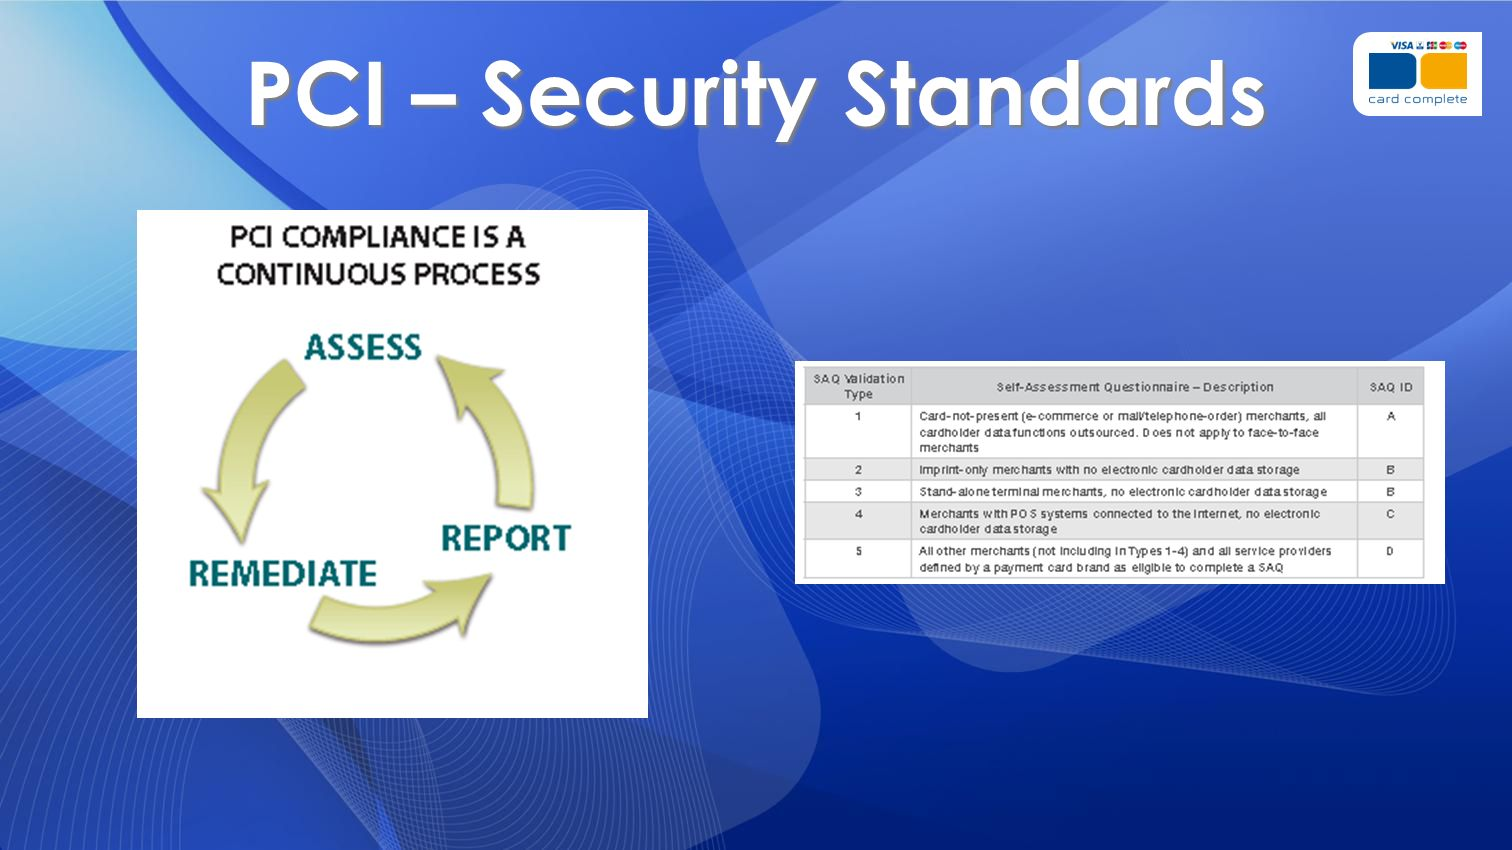 PCI – Security Standards